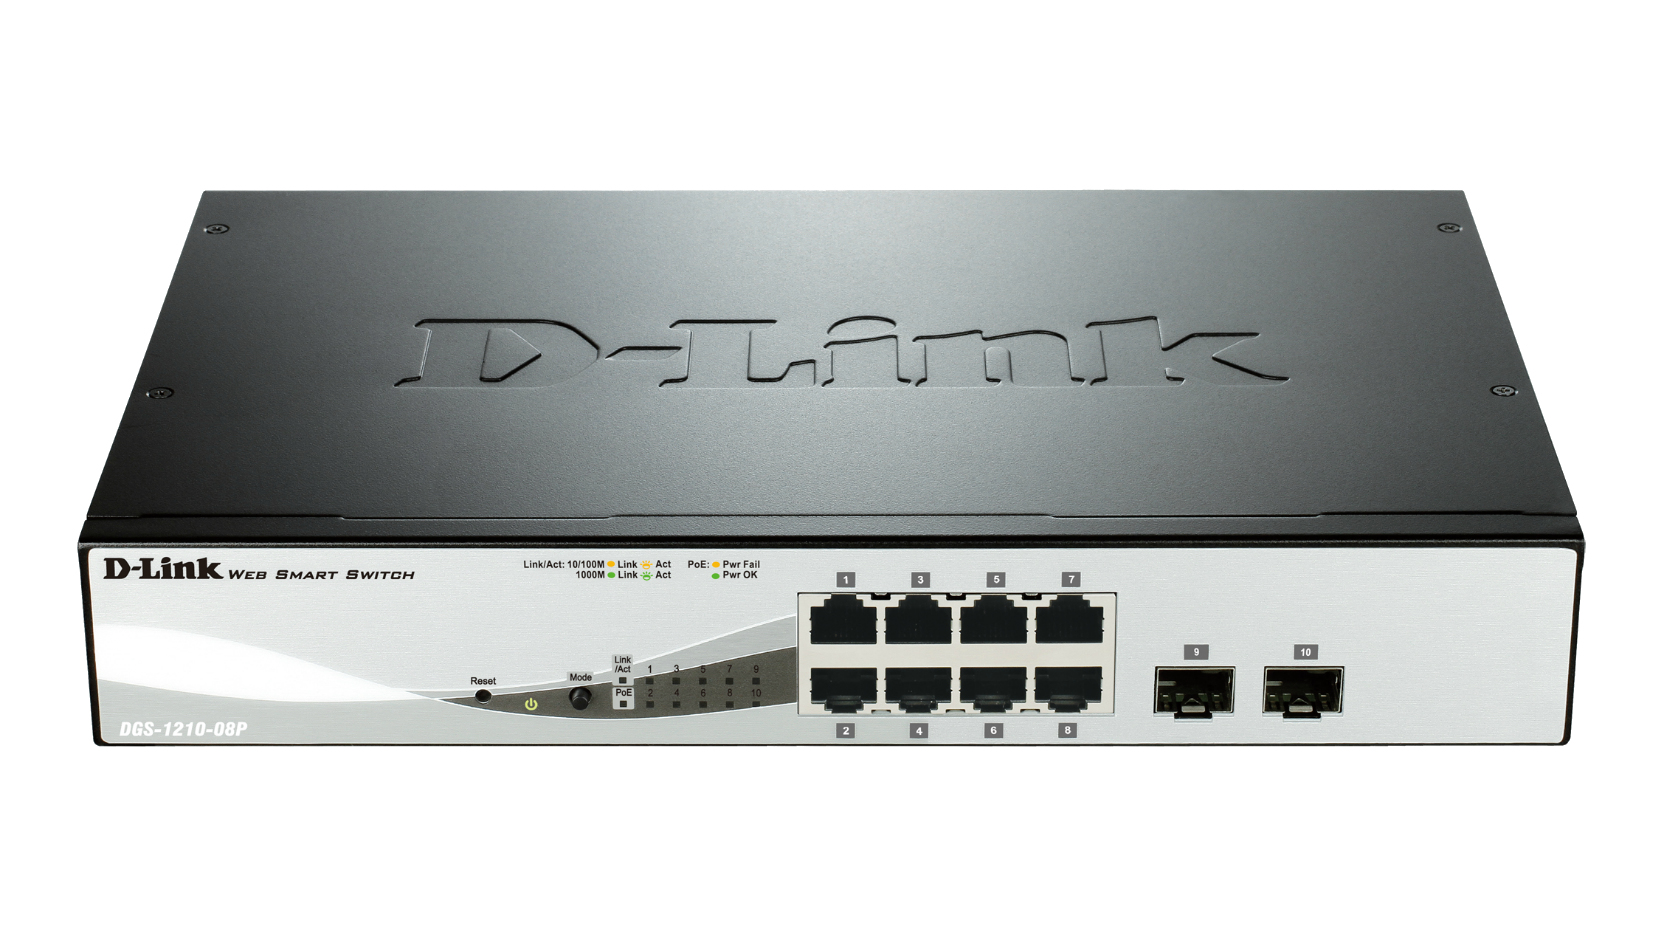 D-Link DGS-1210-08P L2 Gigabit Ethernet (10/100/1000) Power over Ethernet (PoE) Black network switch